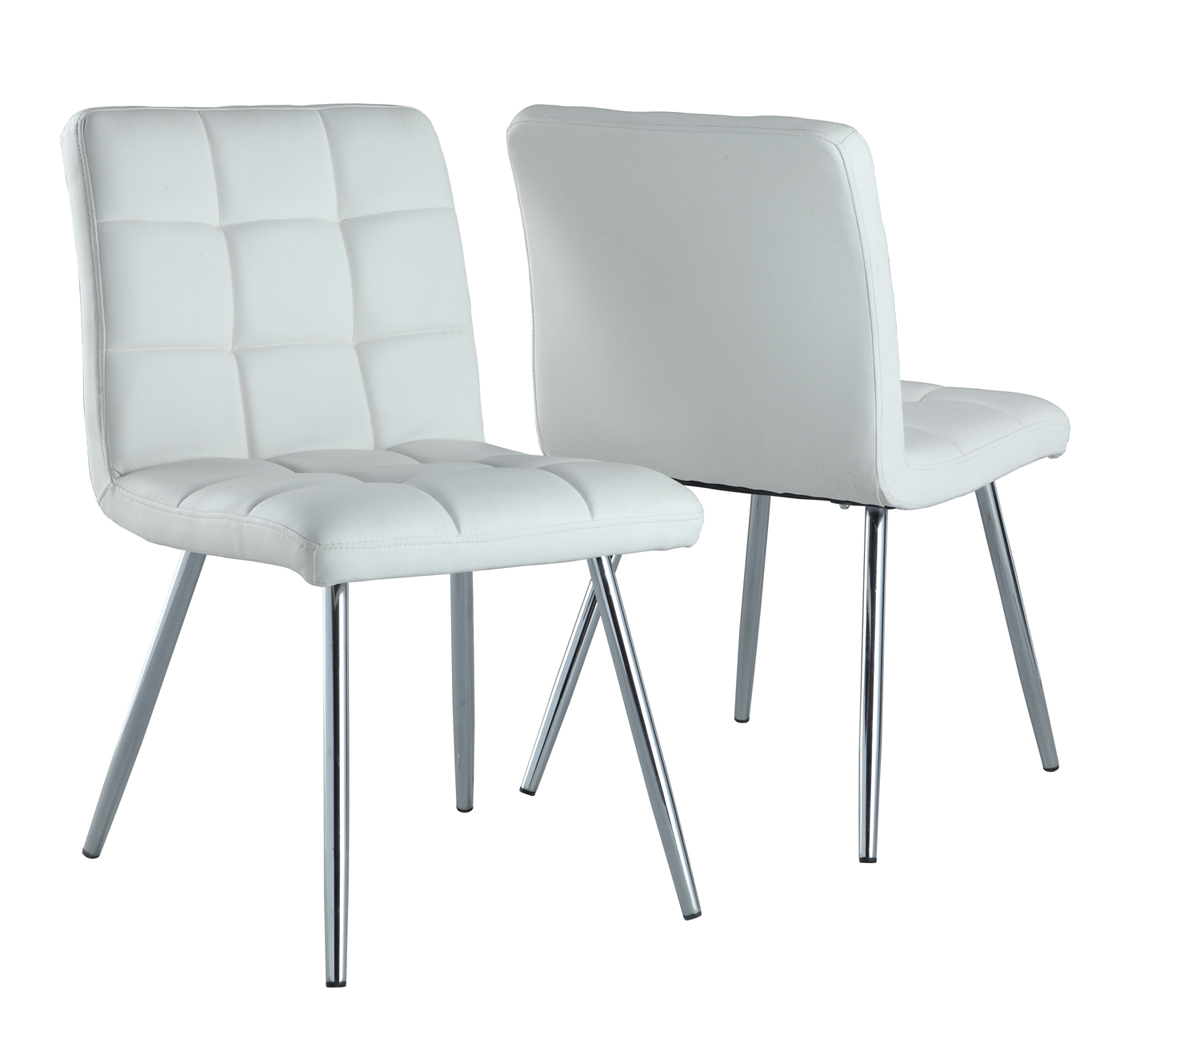 "Dining Chair - 2 Pieces / 32""H / White Leather-Look / Chrome"